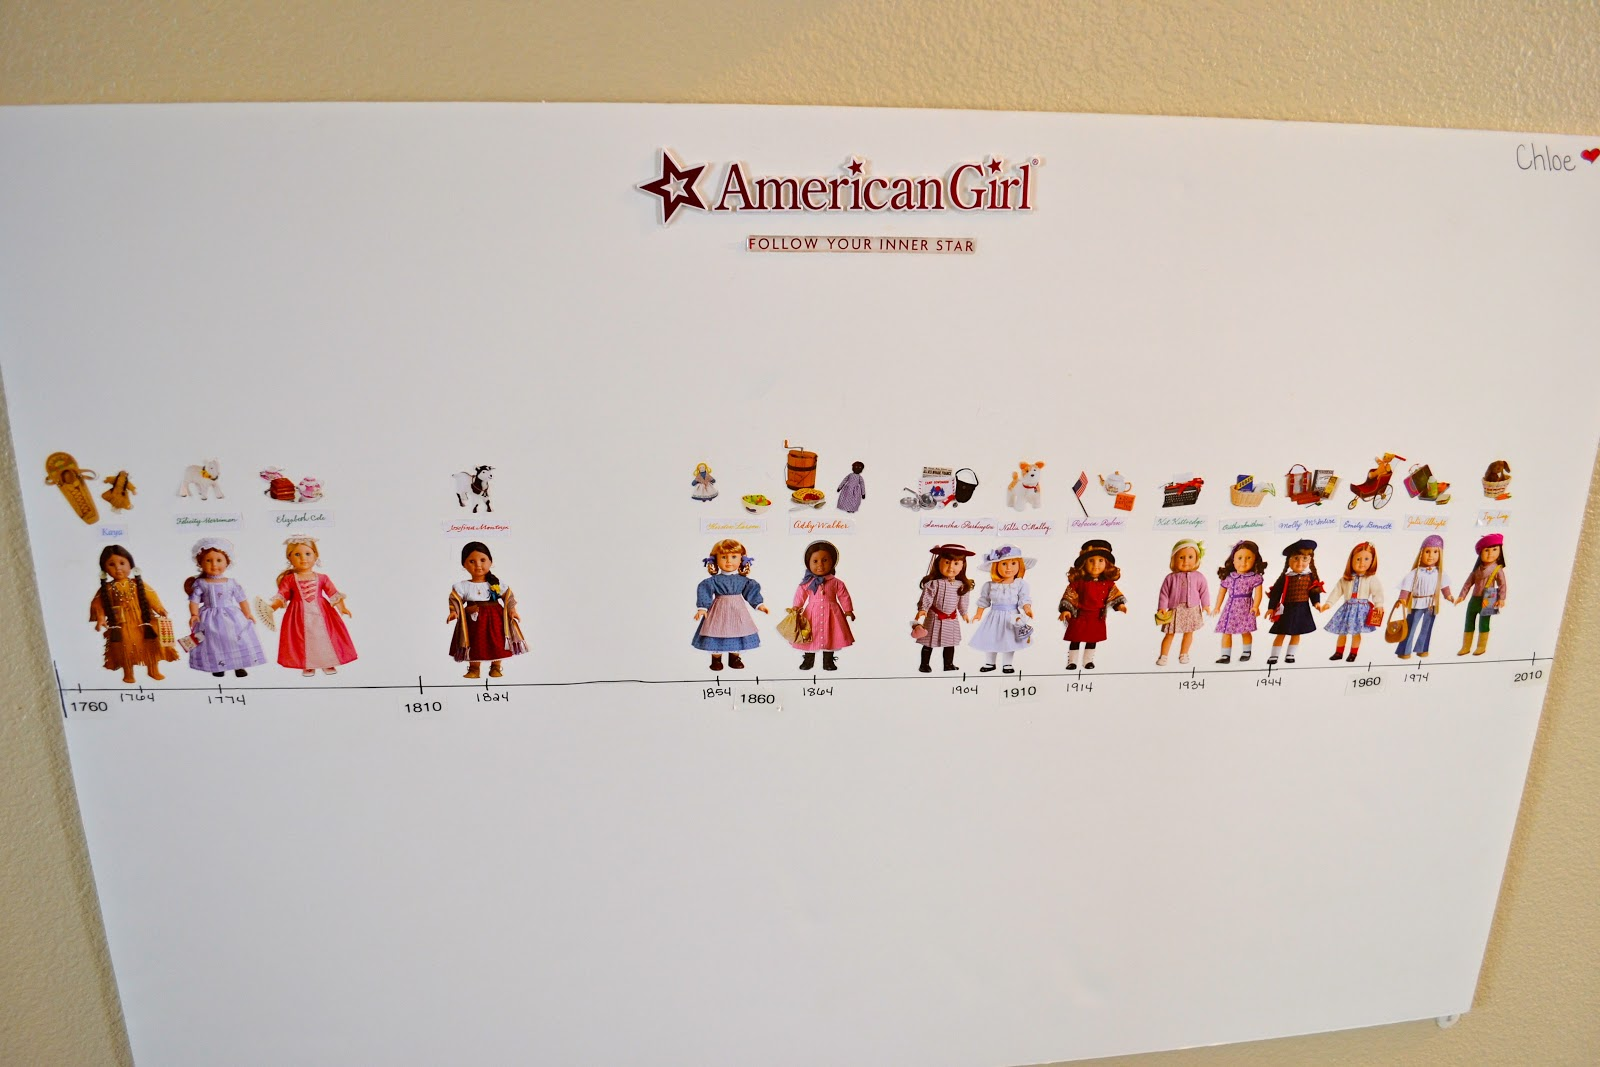 Sadly we are missing marie grace amp cecile i hope american girl comes